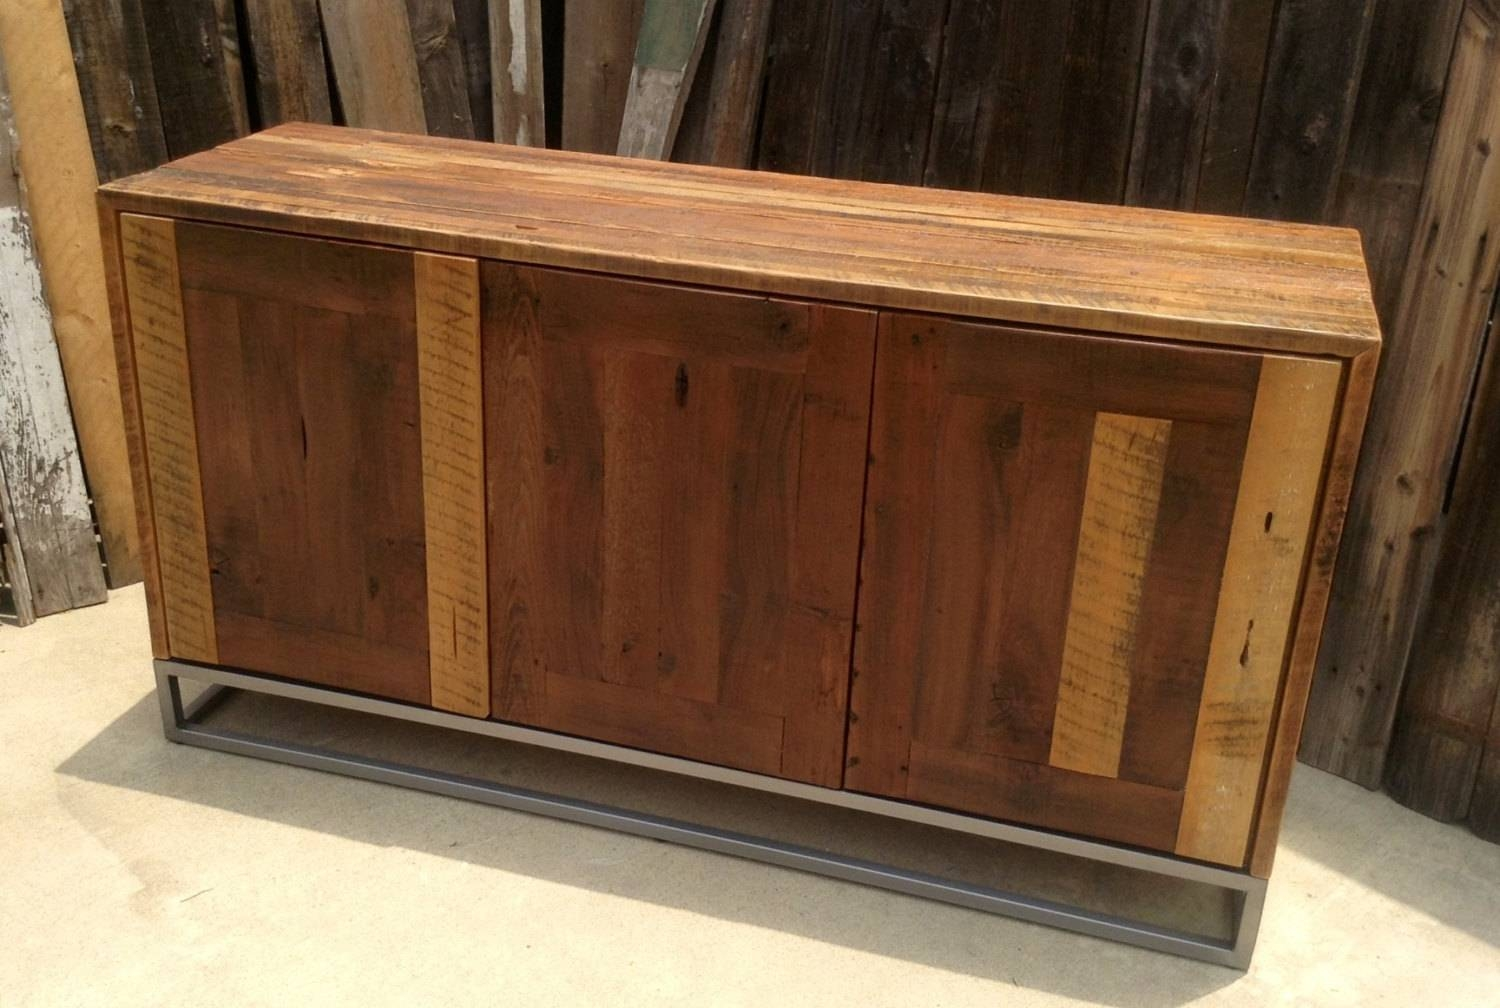 Custom Rustic Modern/ Industrial Reclaimed Wood Buffet Cabinet Inside Most Up To Date Reclaimed Wood Sideboards (View 7 of 15)